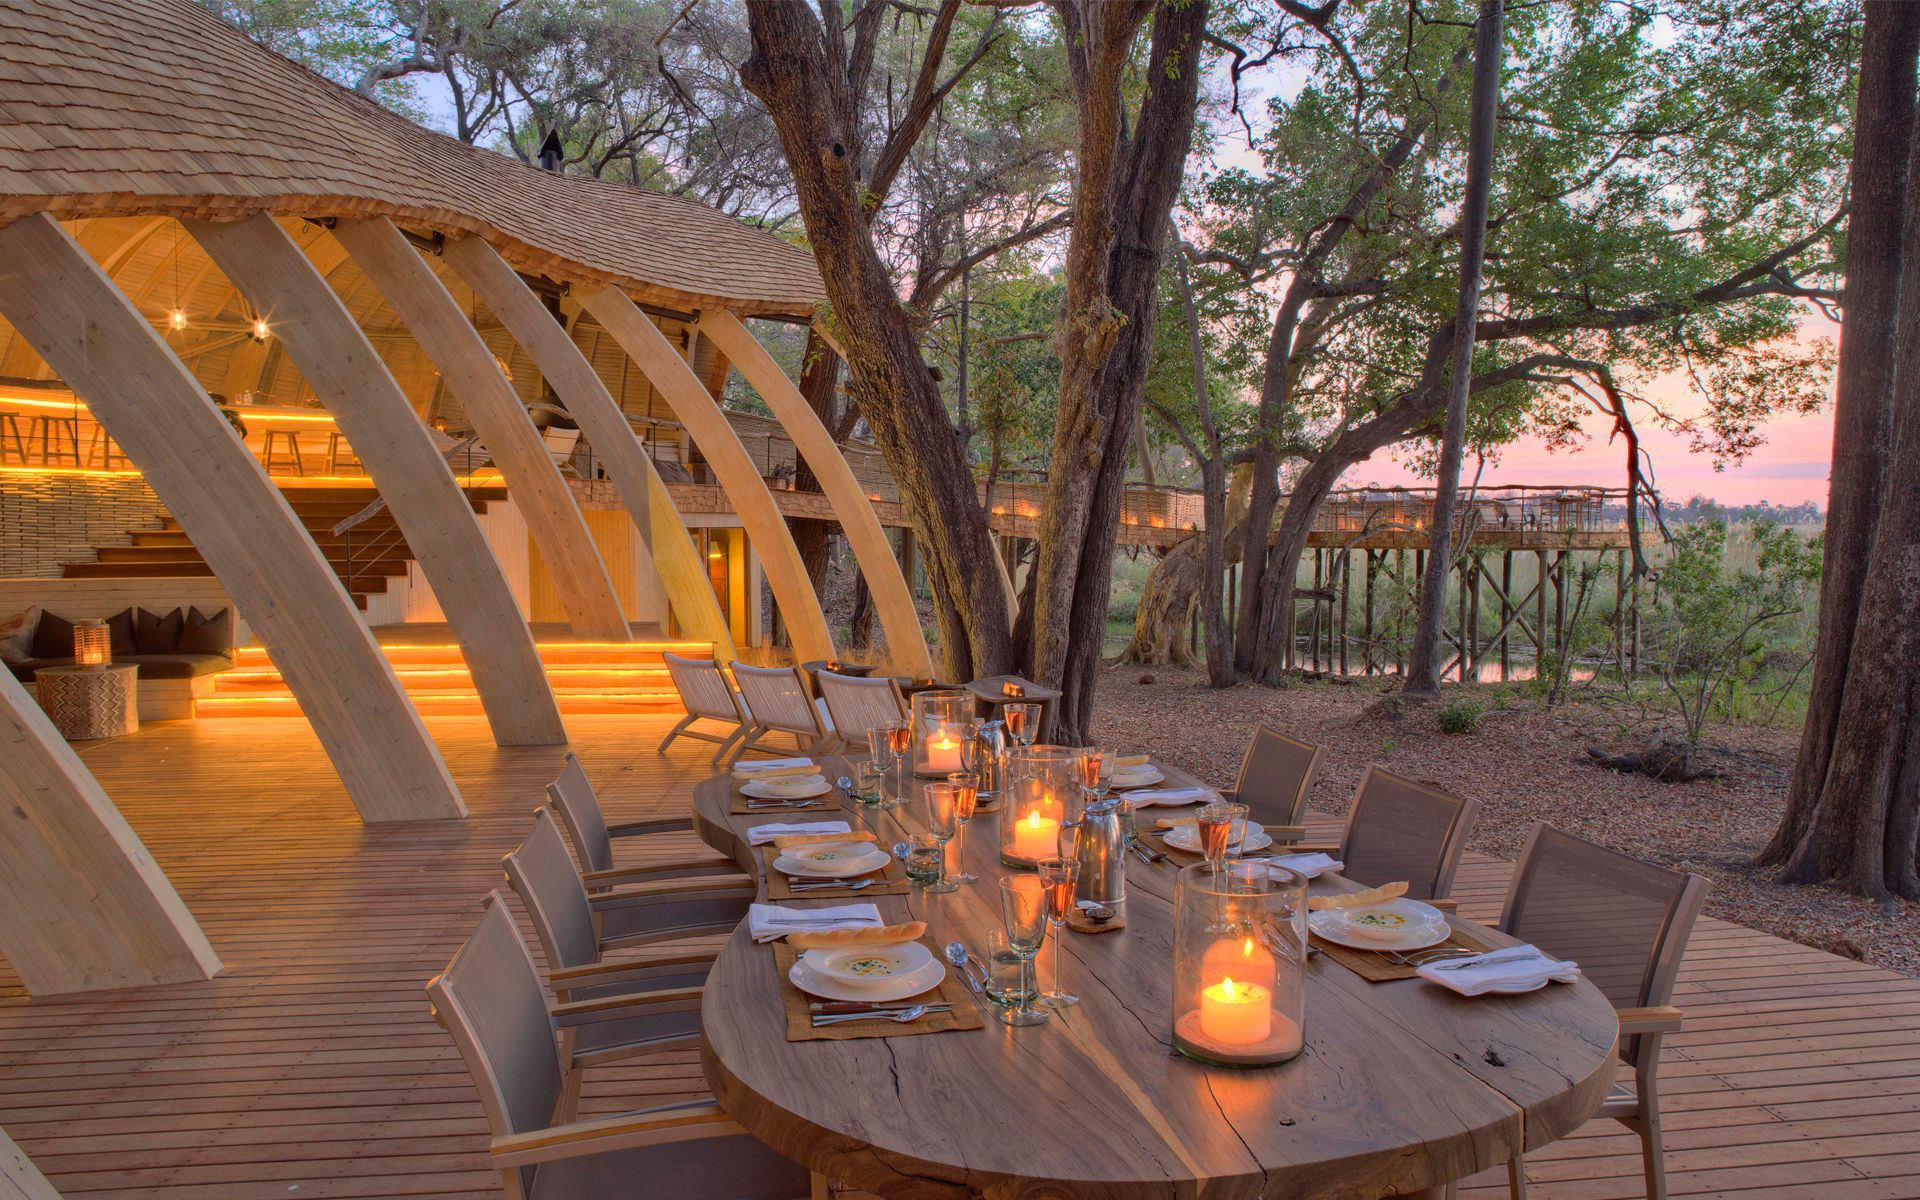 andbeyond_sandibe_okavango_safari_lodge_12